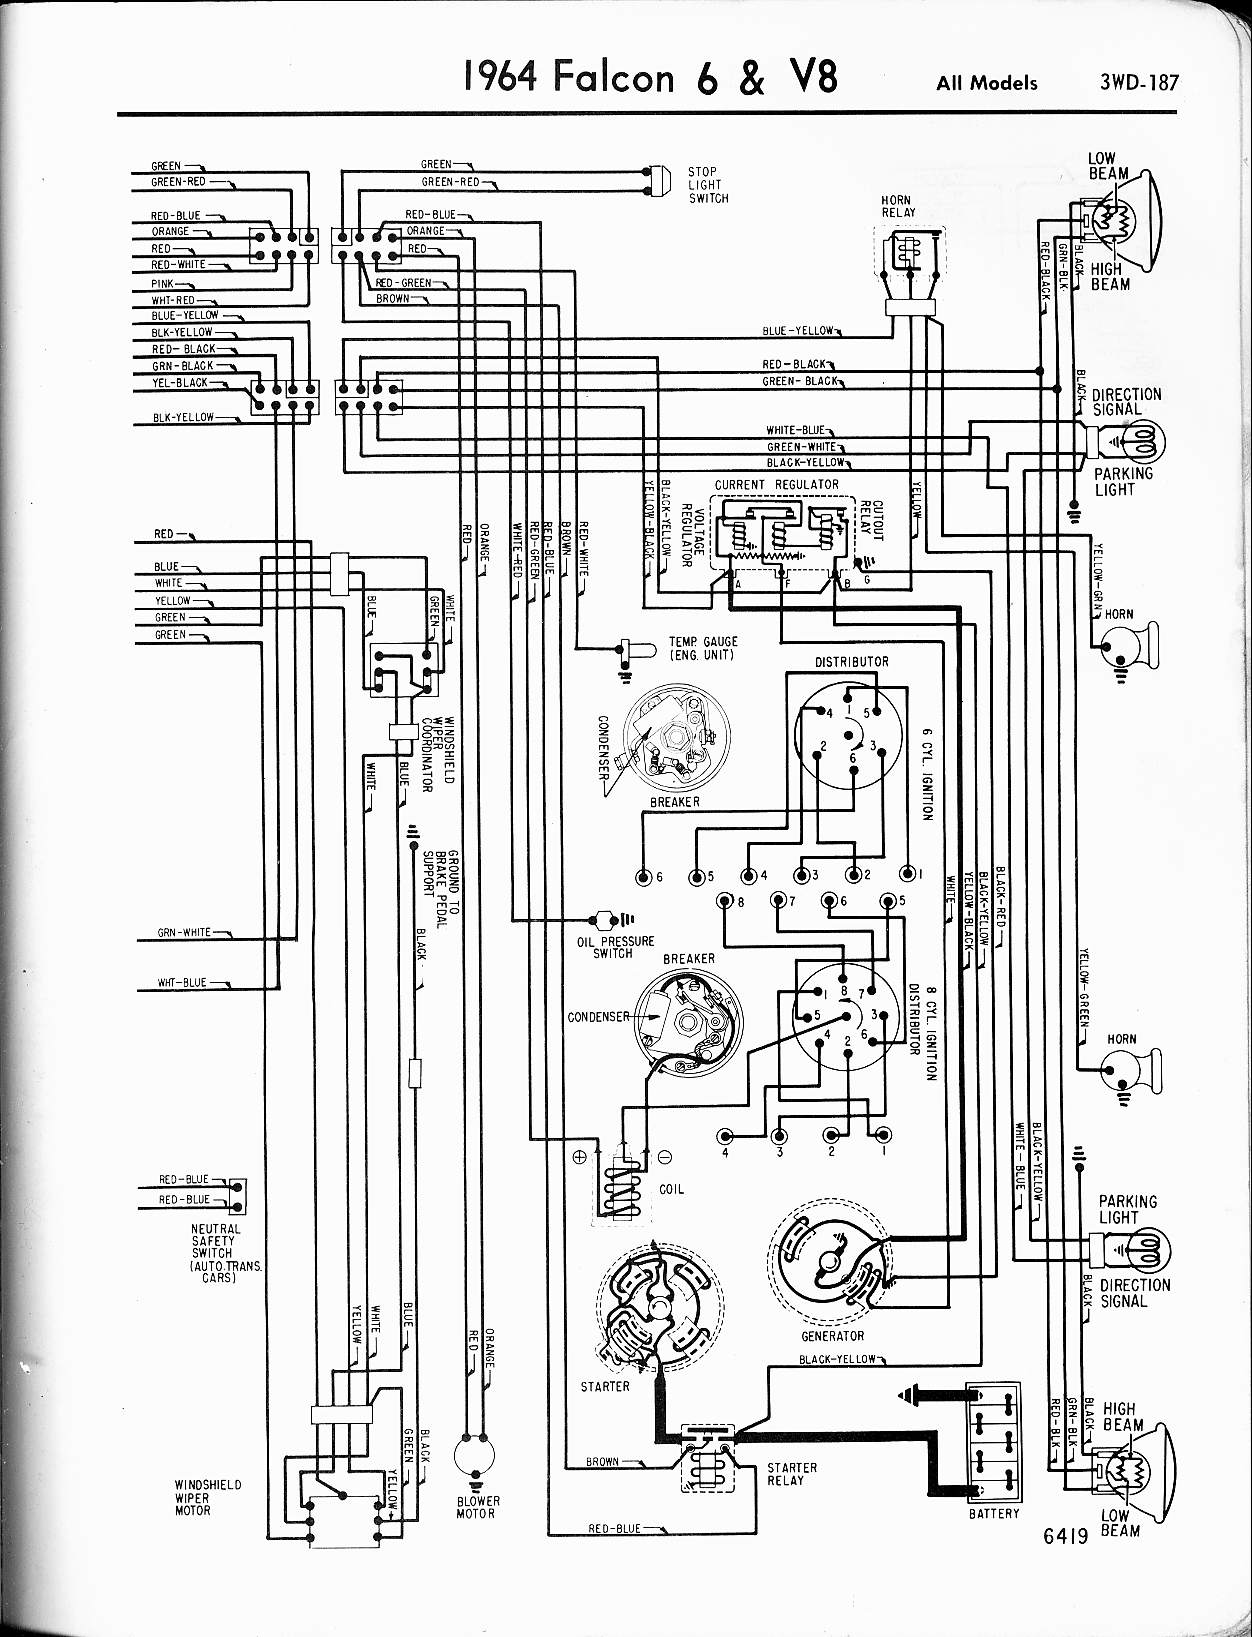 MWire5765 187 57 65 ford wiring diagrams au falcon wiring diagram manual at n-0.co